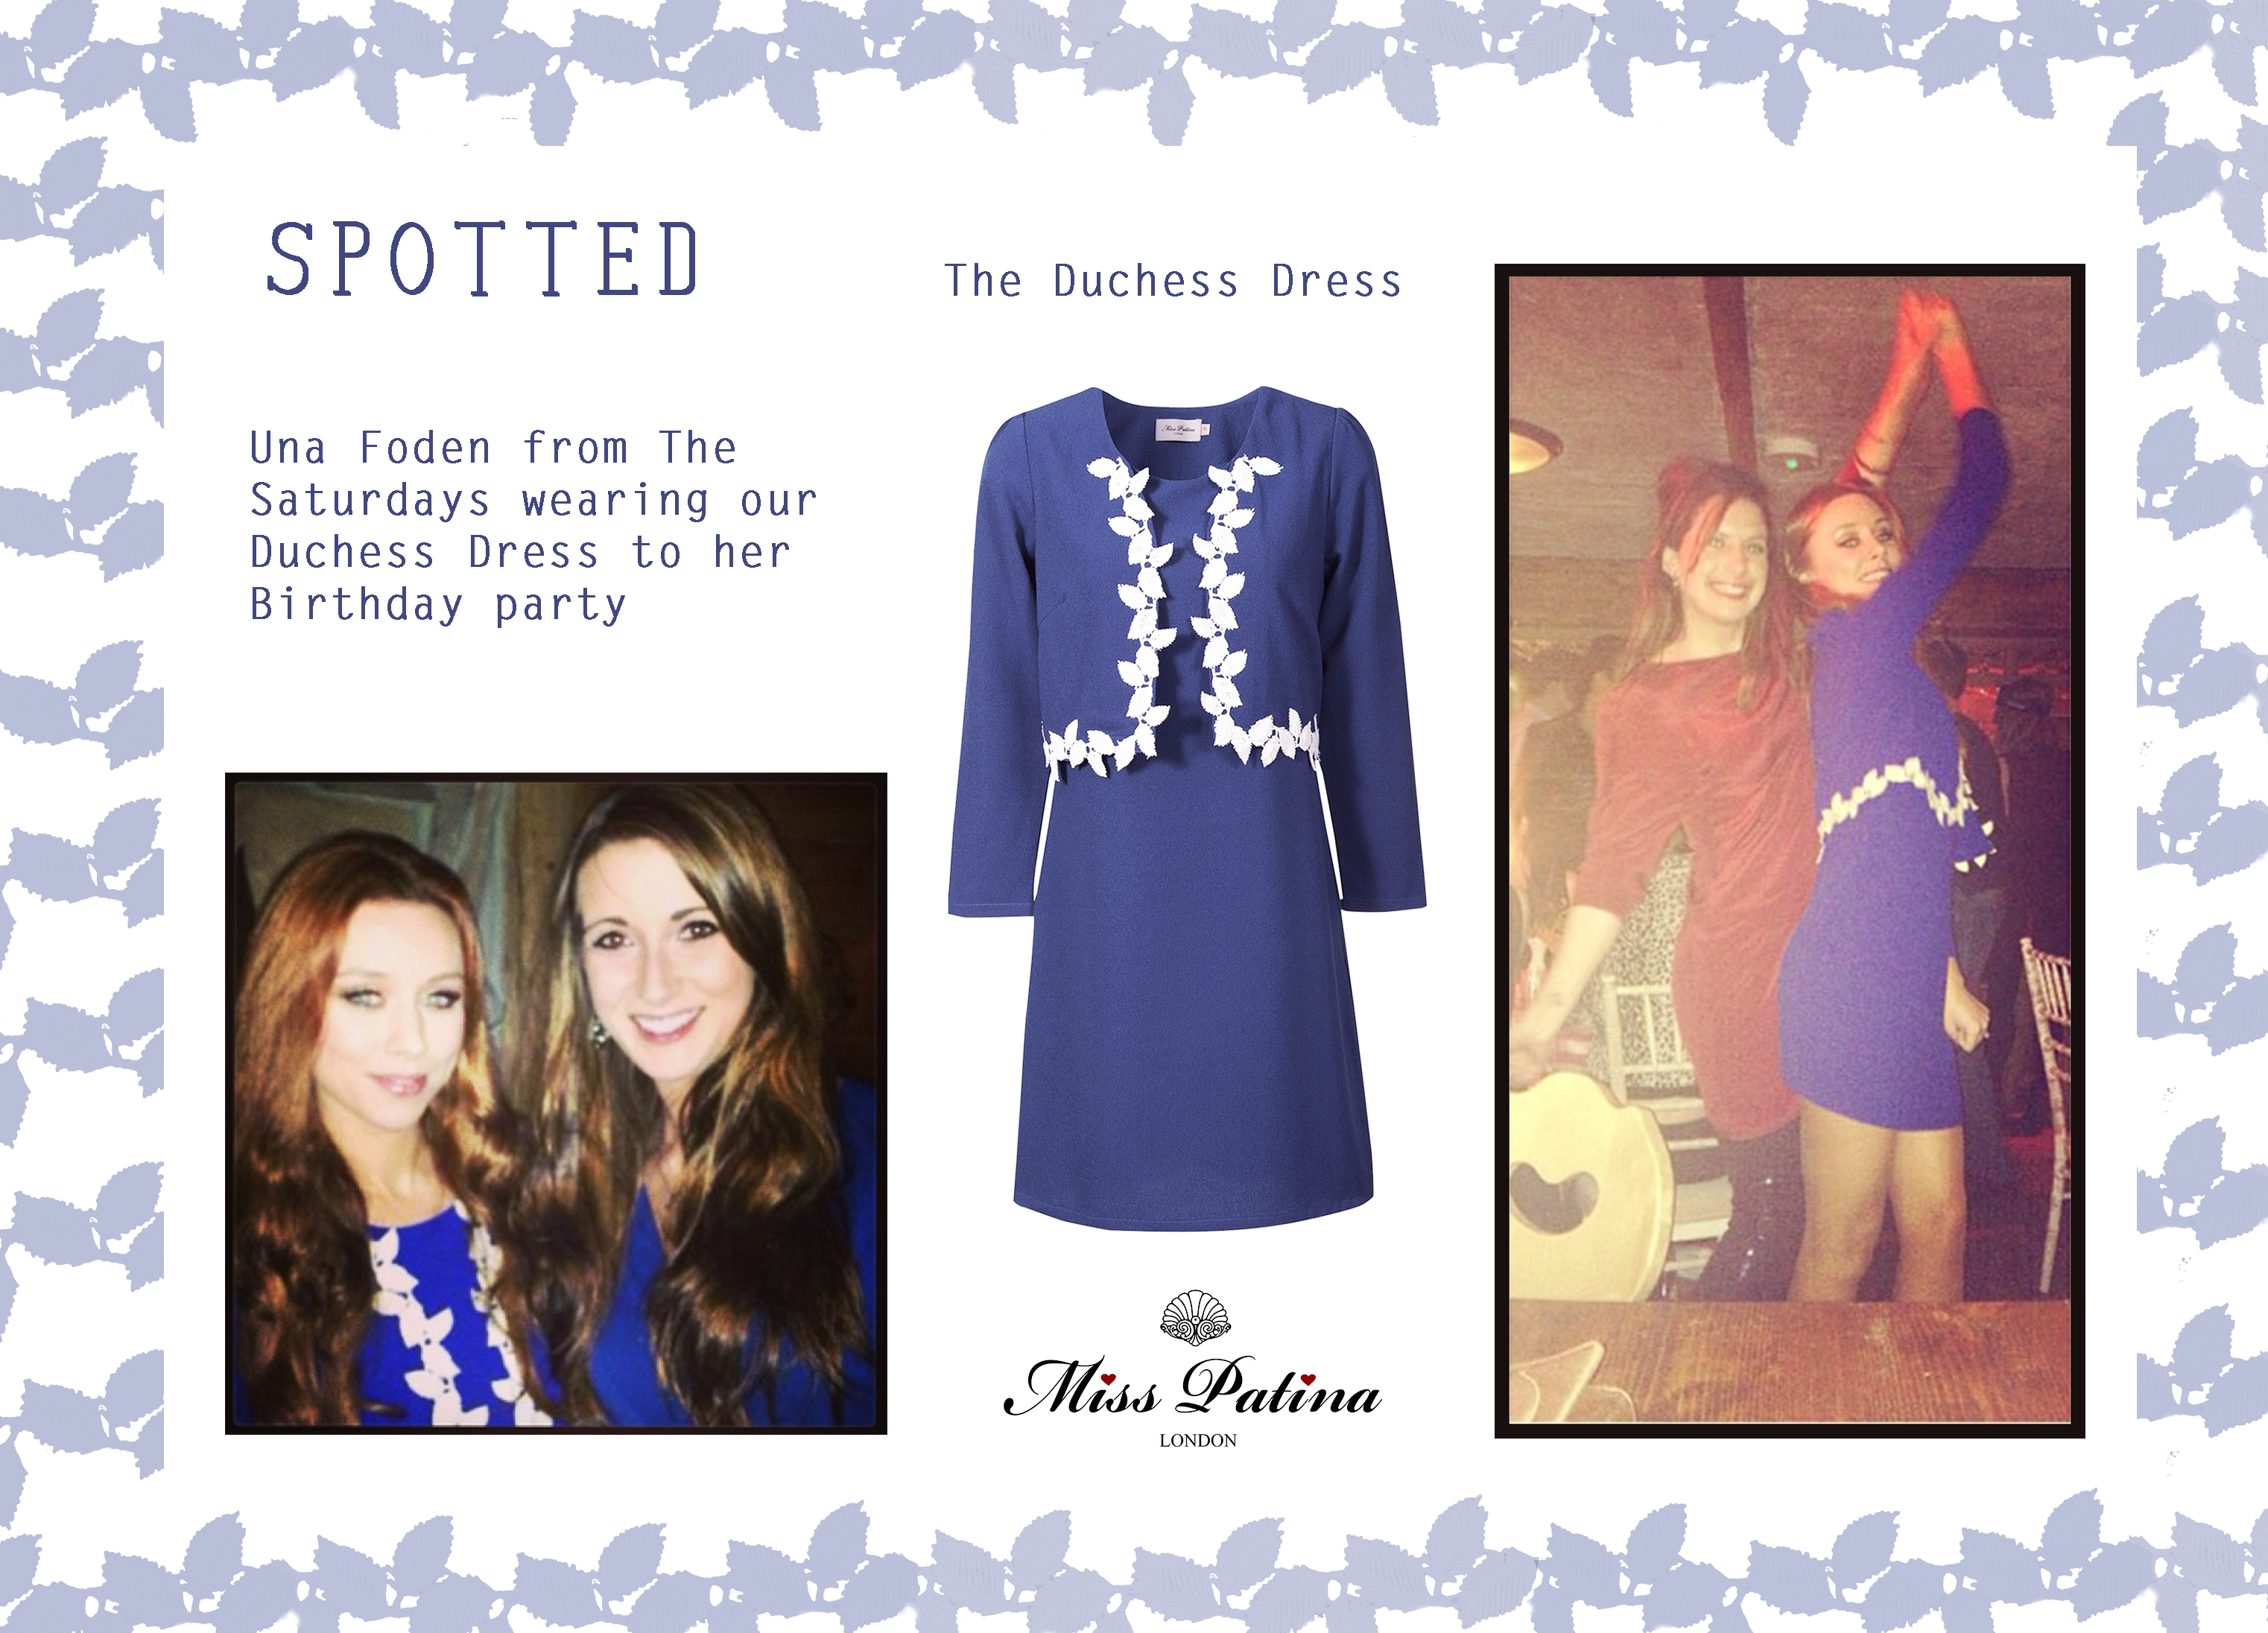 Spotted: The Saturdays, Una Foden wearing Miss Patina